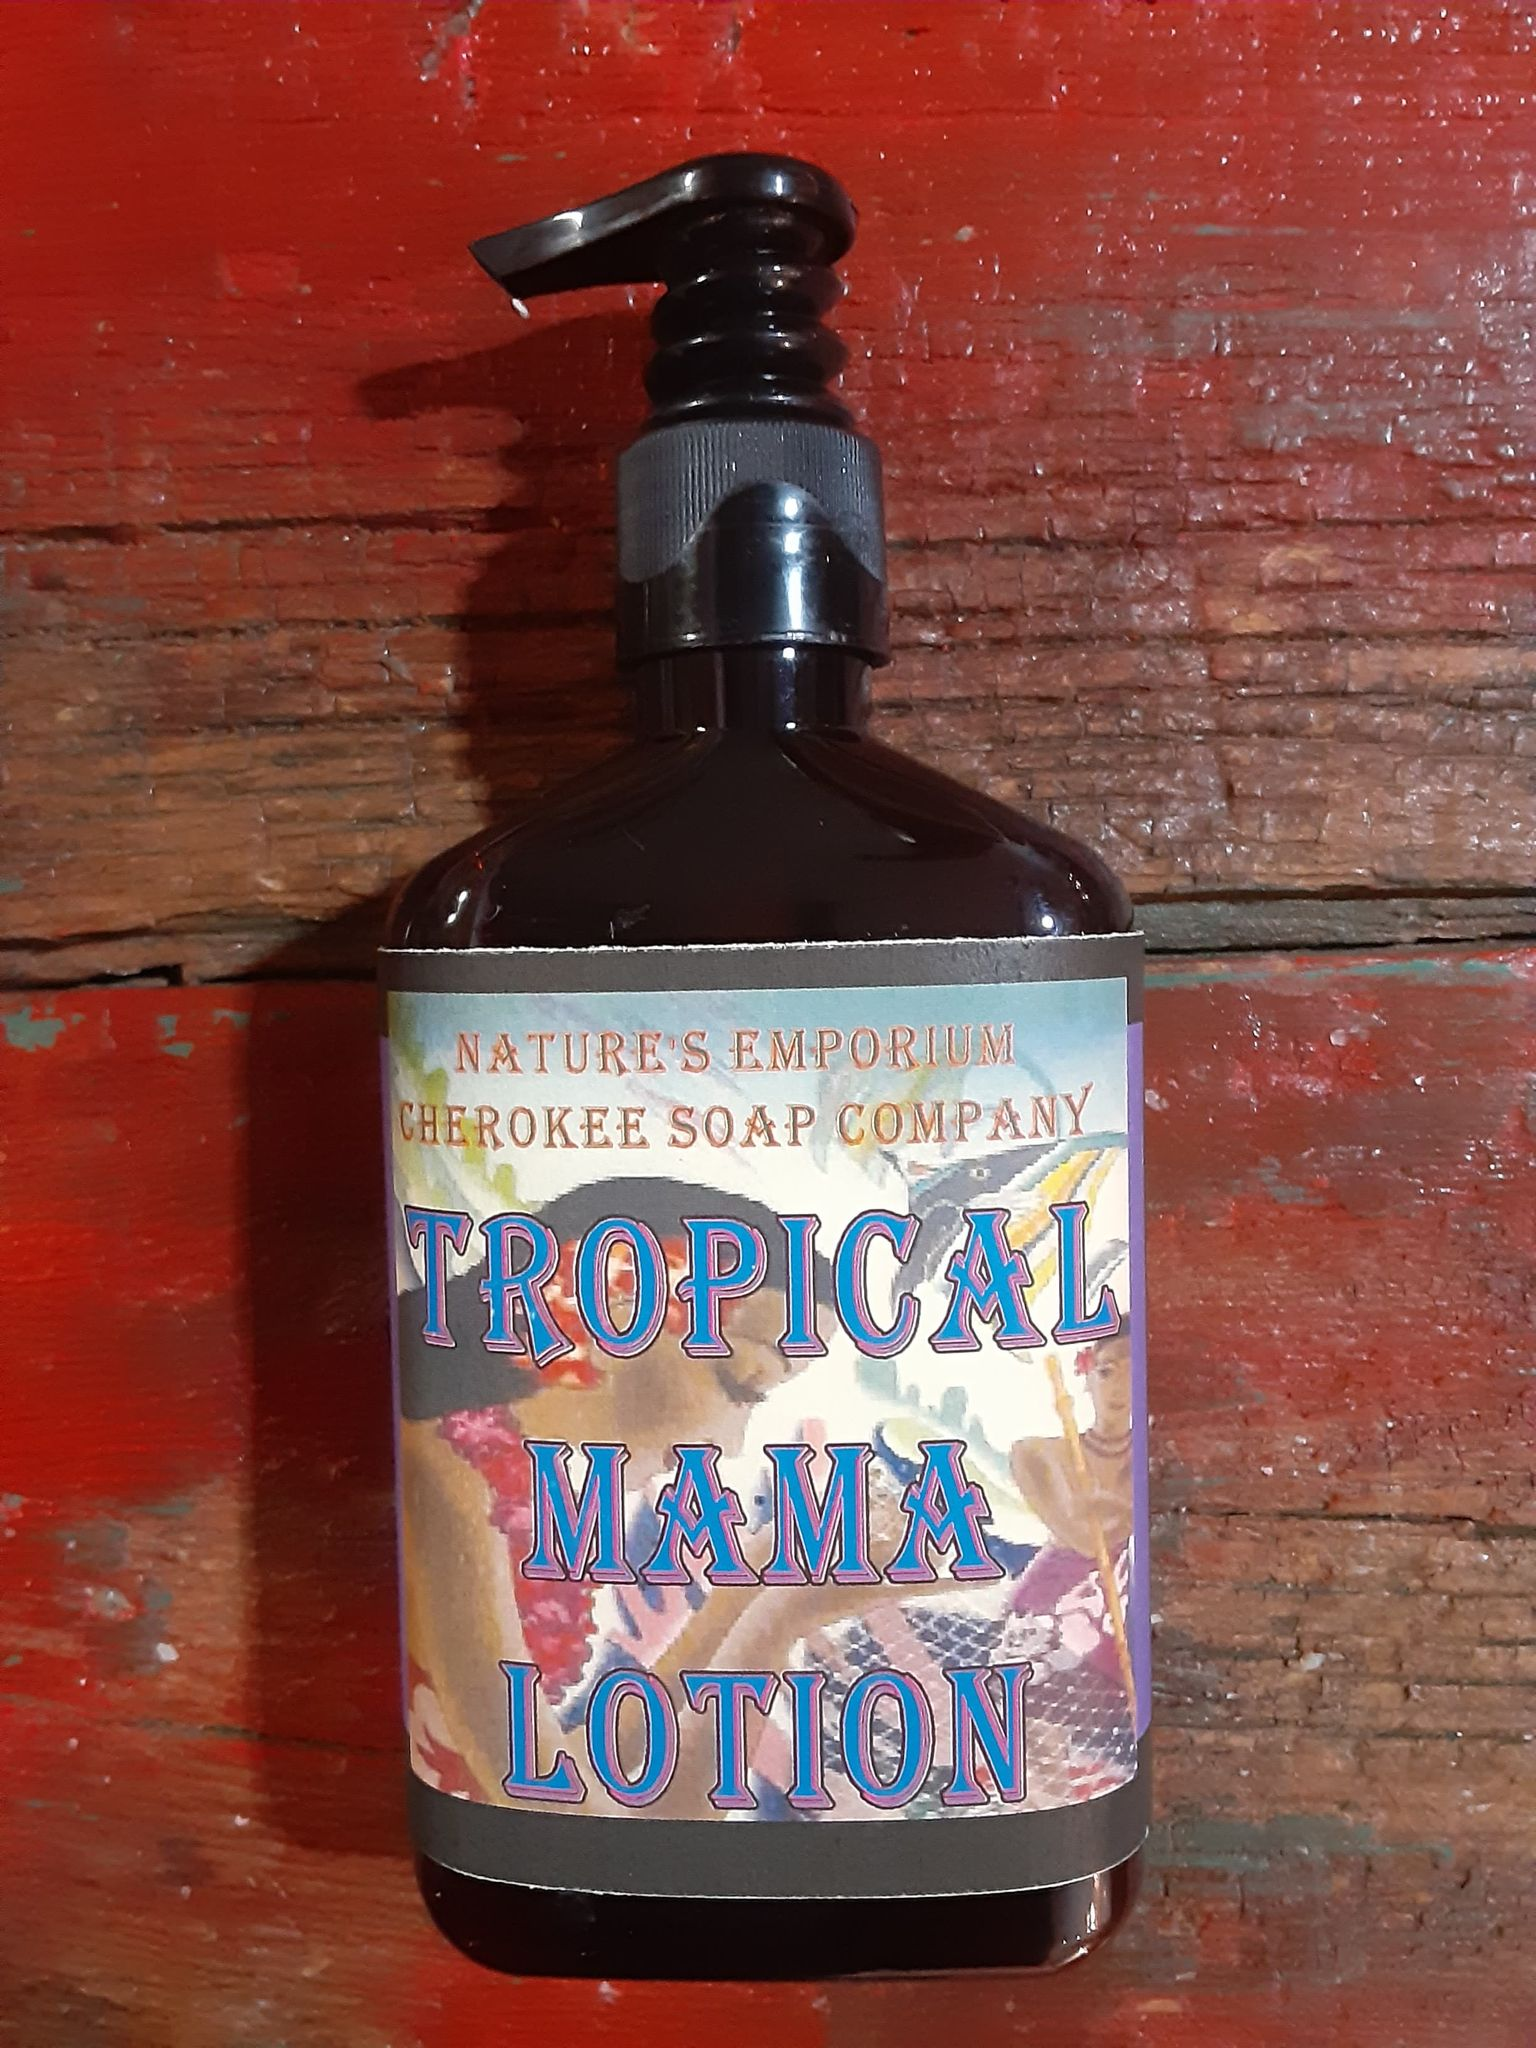 Tropical Mama Lotion